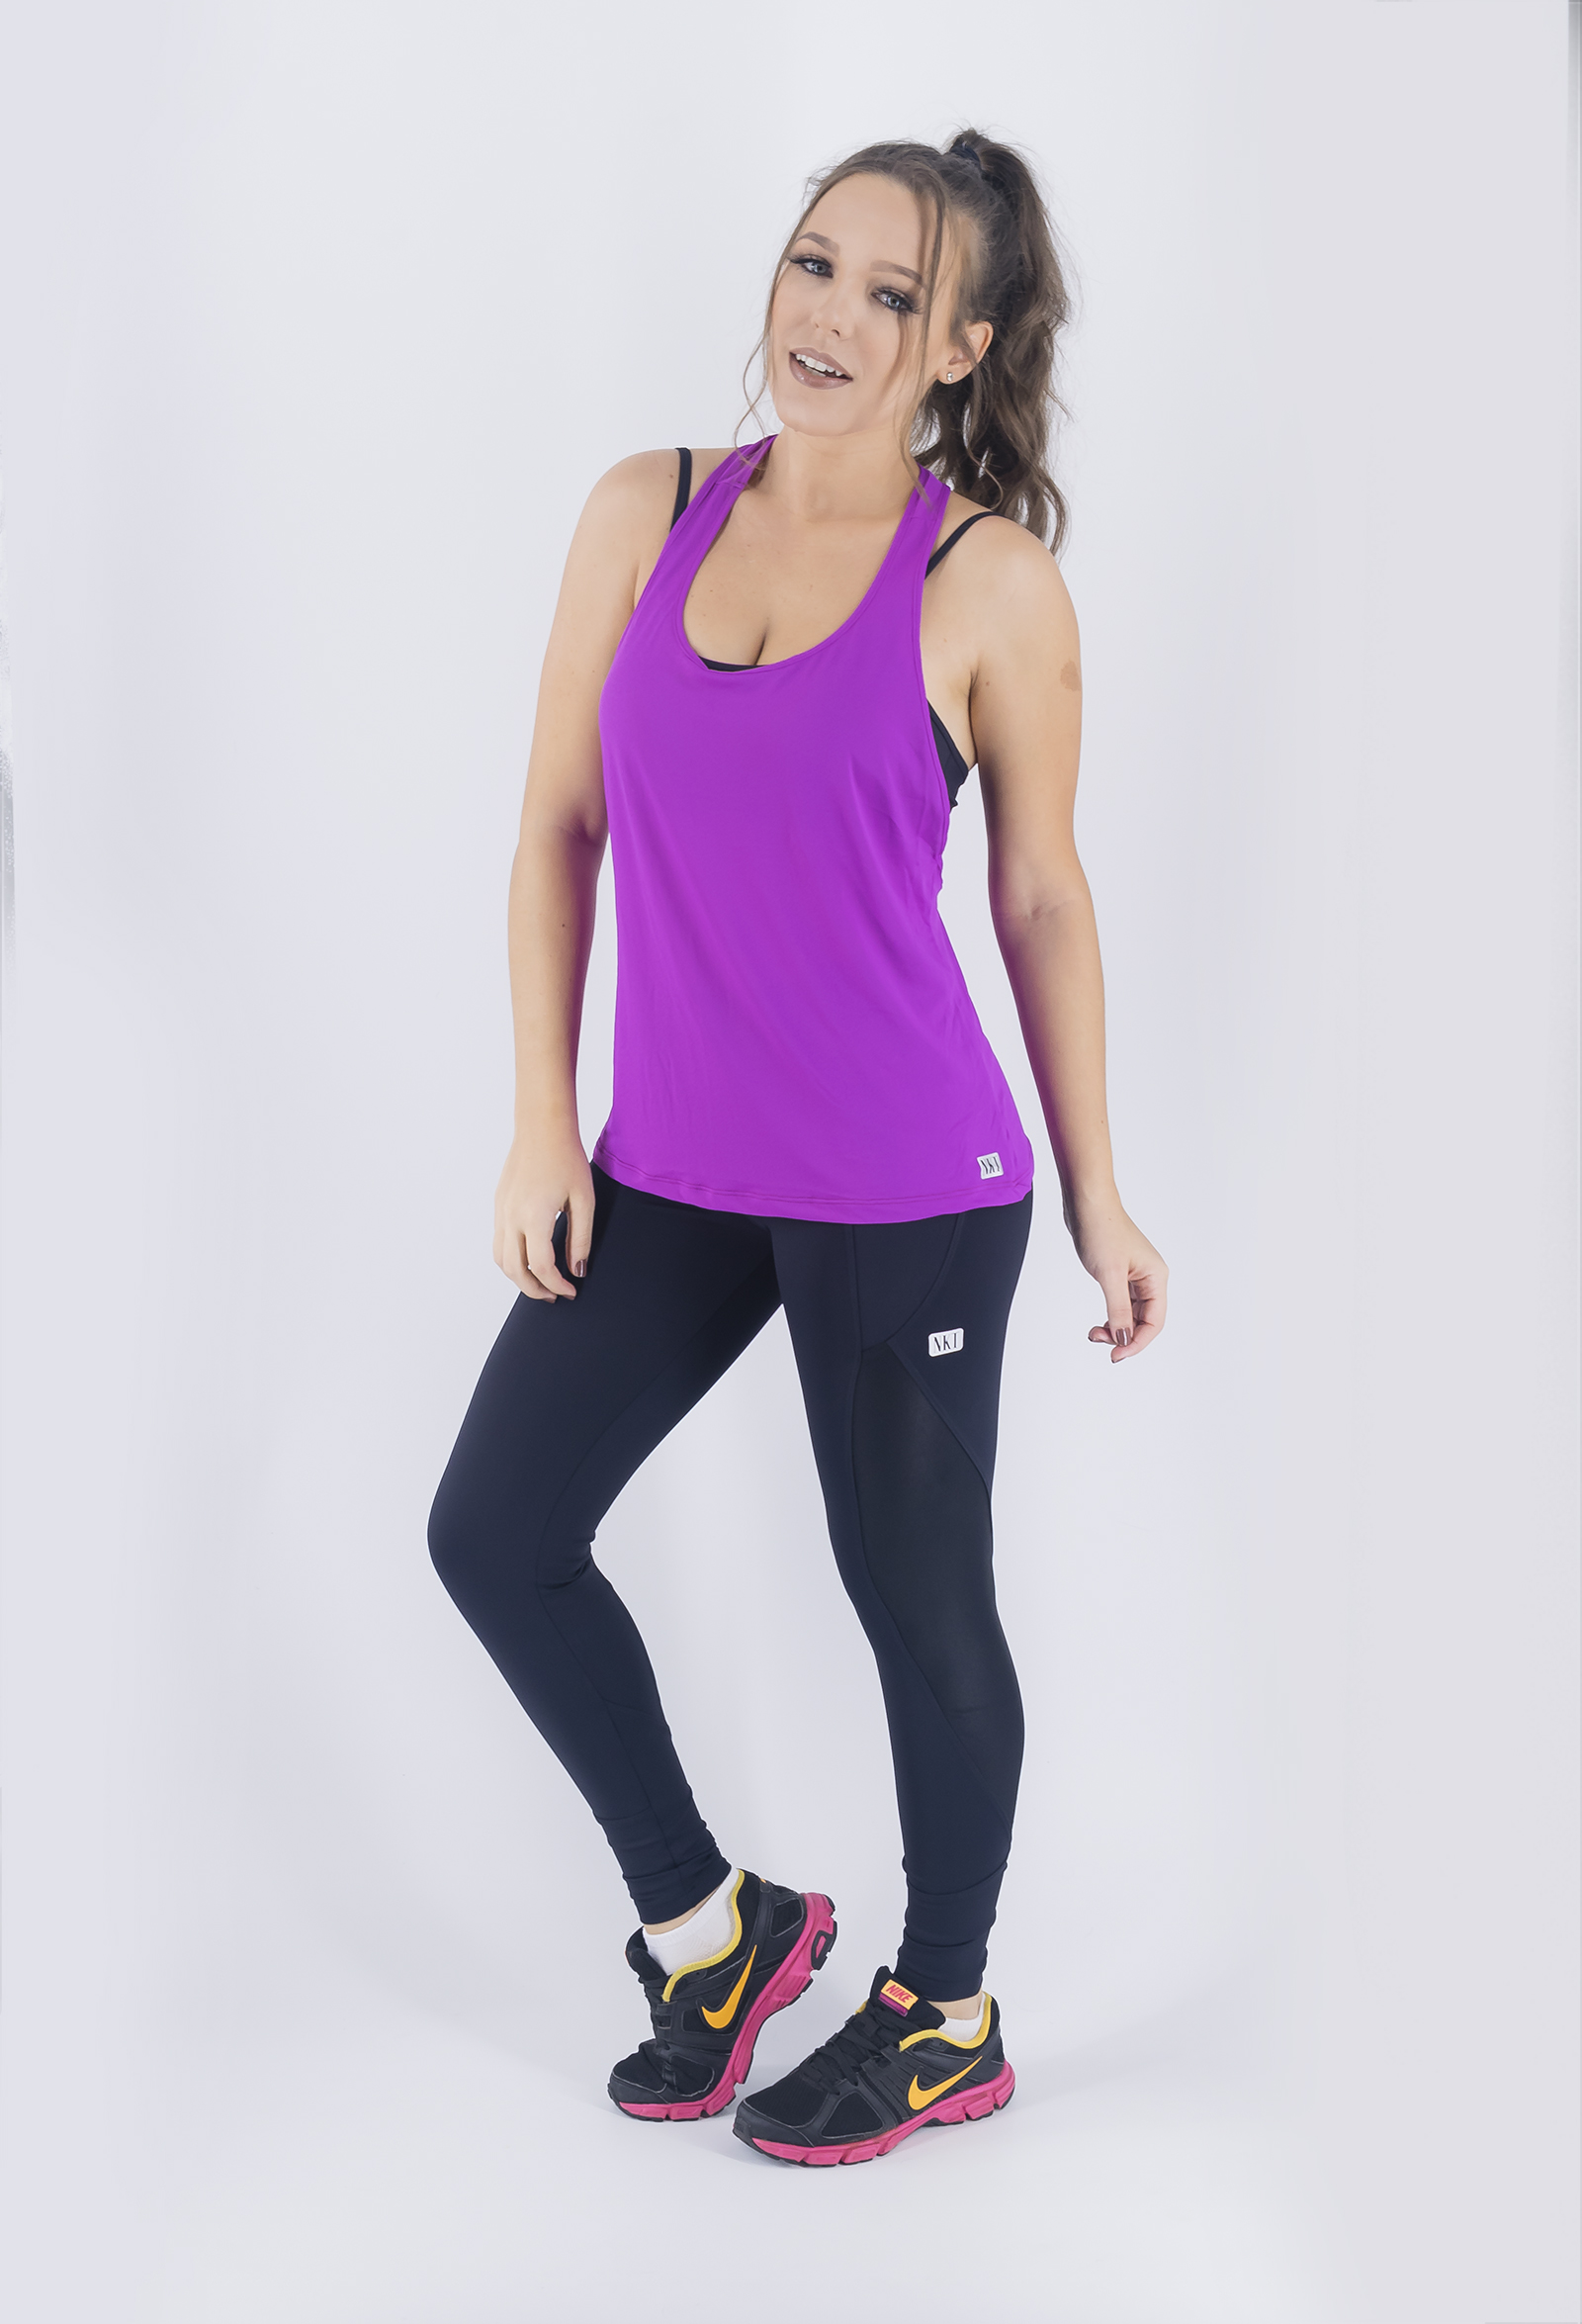 Regata Cava Fabulous Roxa, Coleção Just For You - NKT Fitwear Moda Fitness